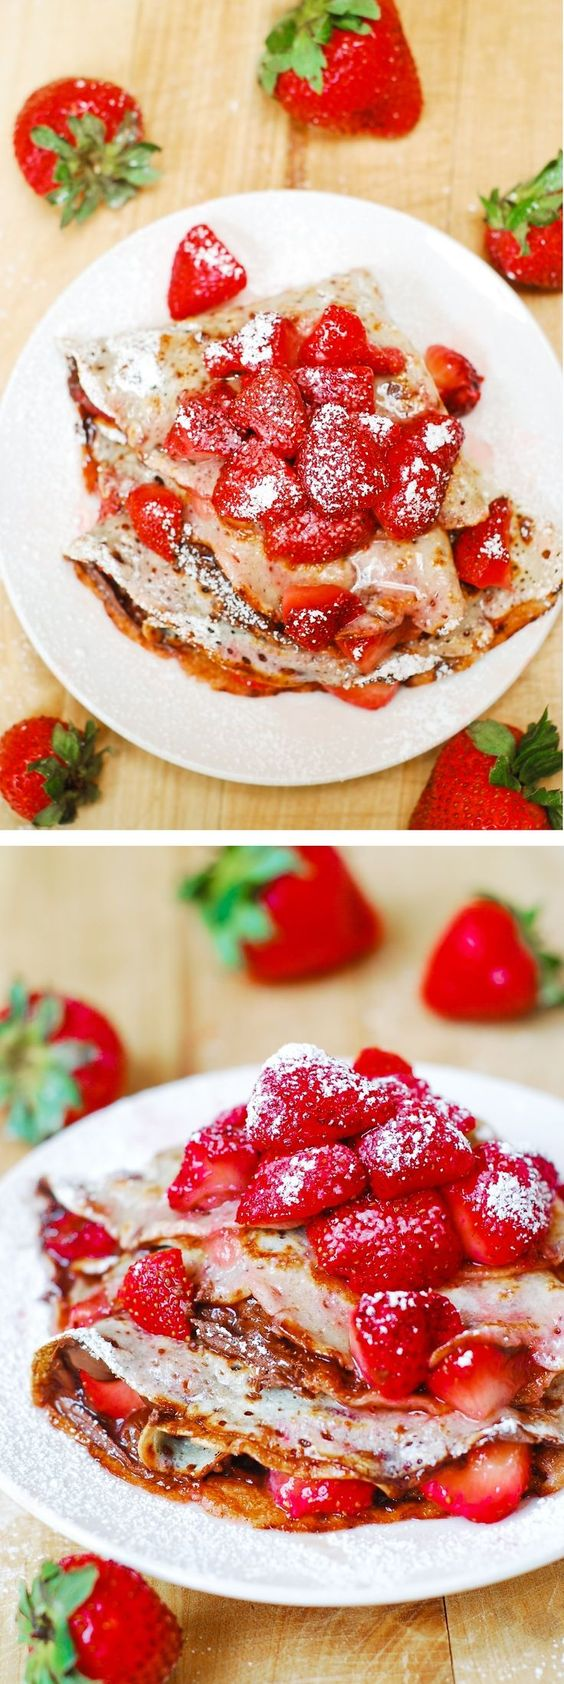 Strawberry and Nutella crepes | Recipe | Pinterest | Nutella, Summer ...